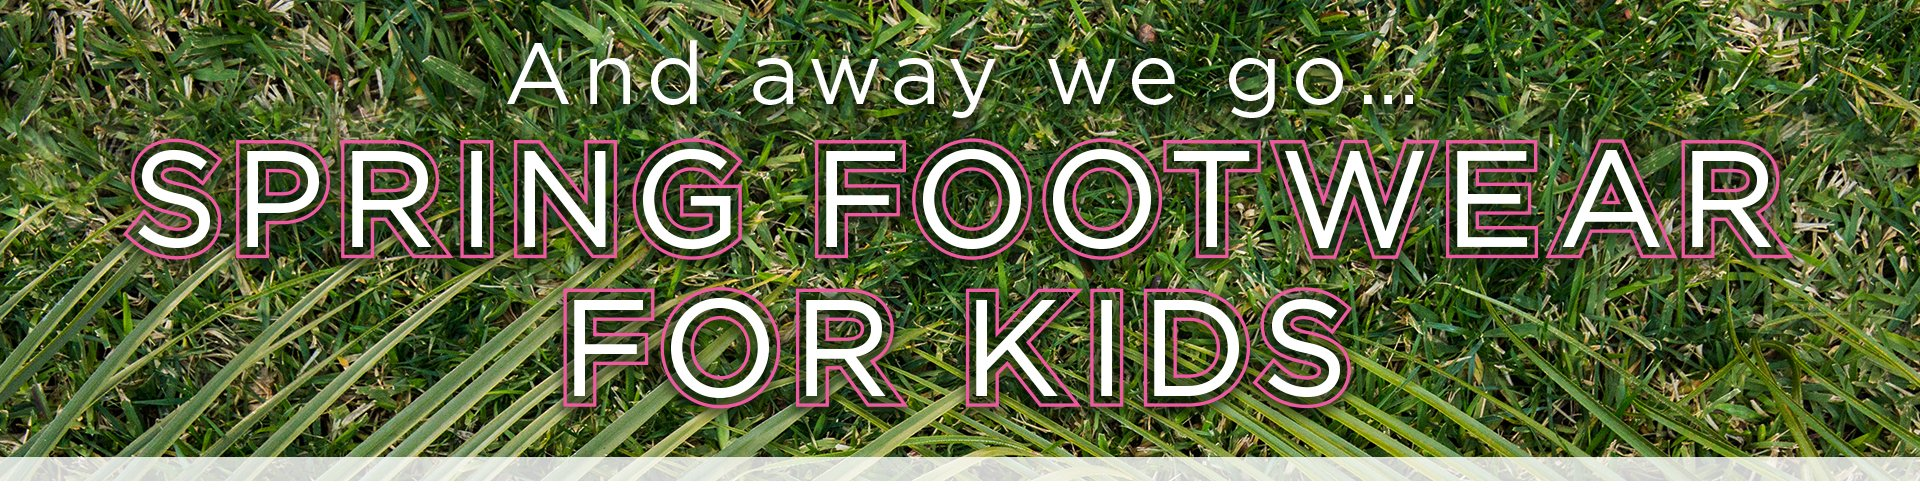 Spring Footwear for Kids Look Book Header